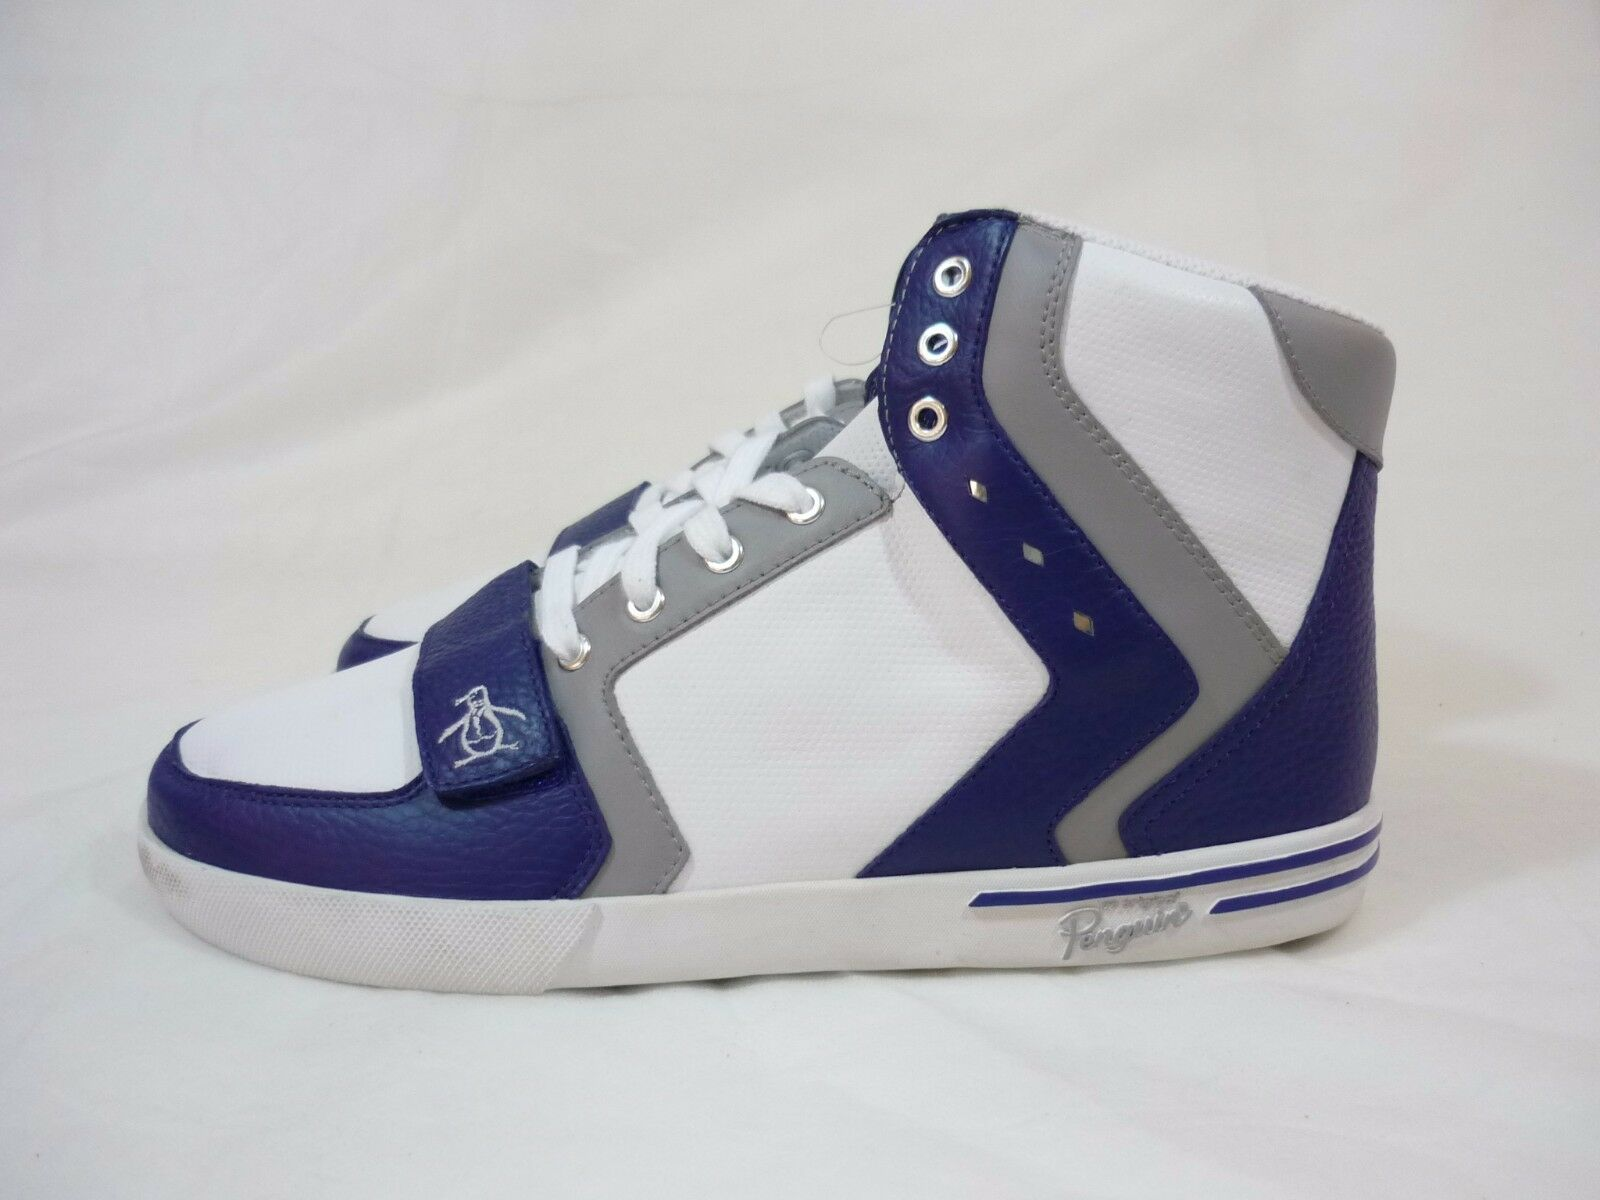 Original Penguin Moby Hi Top Leather Sneakers Men's shoes White bluee Grey Size 9